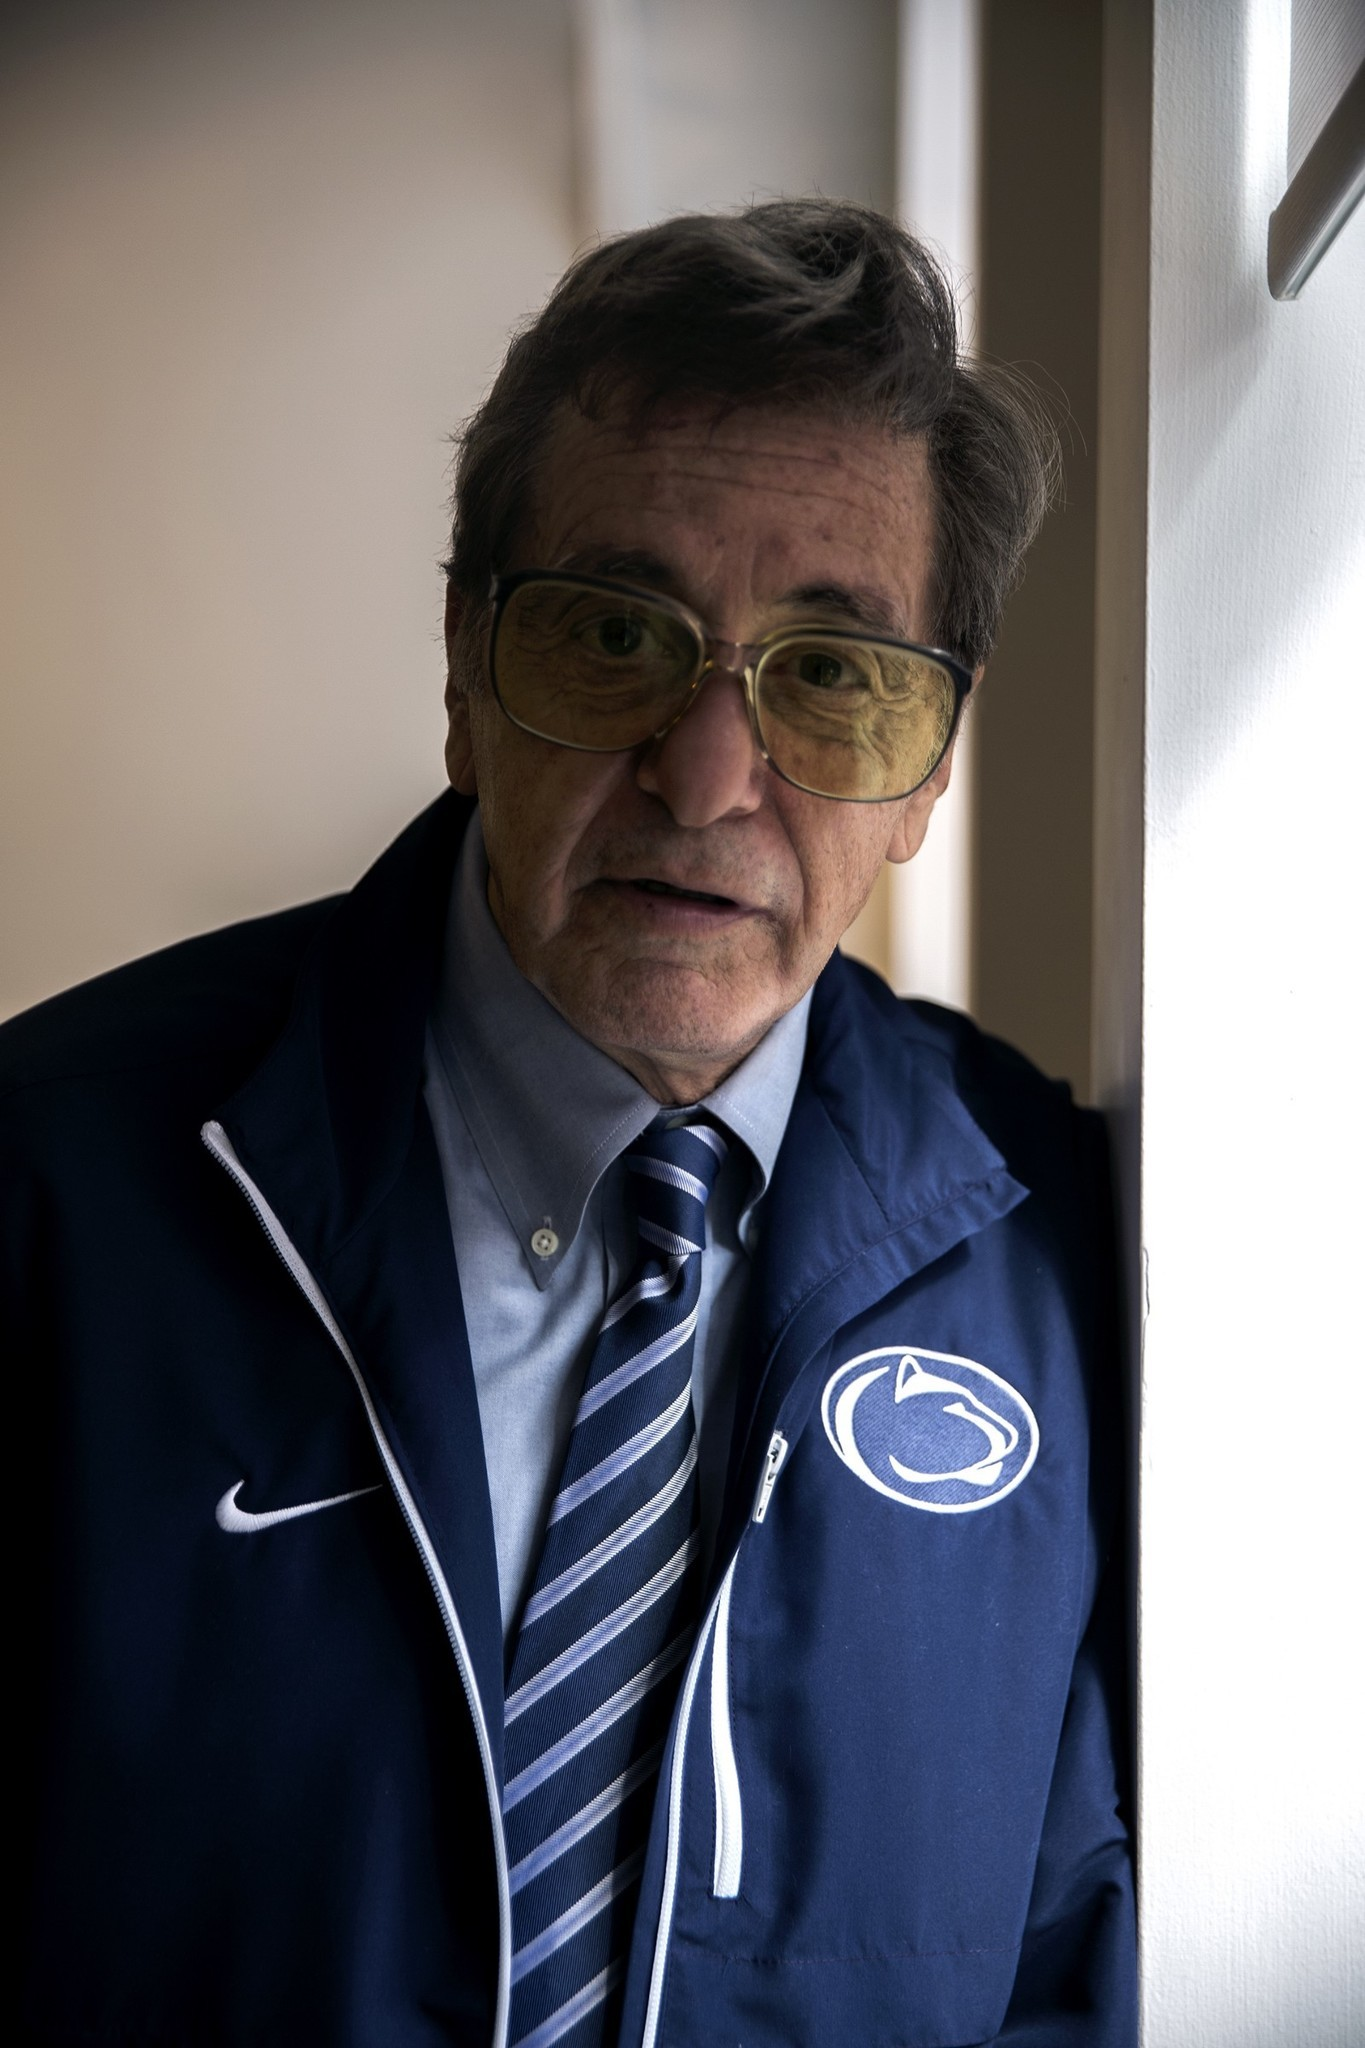 Mc-hbo-releases-photo-of-al-pacino-as-joe-paterno-20170717